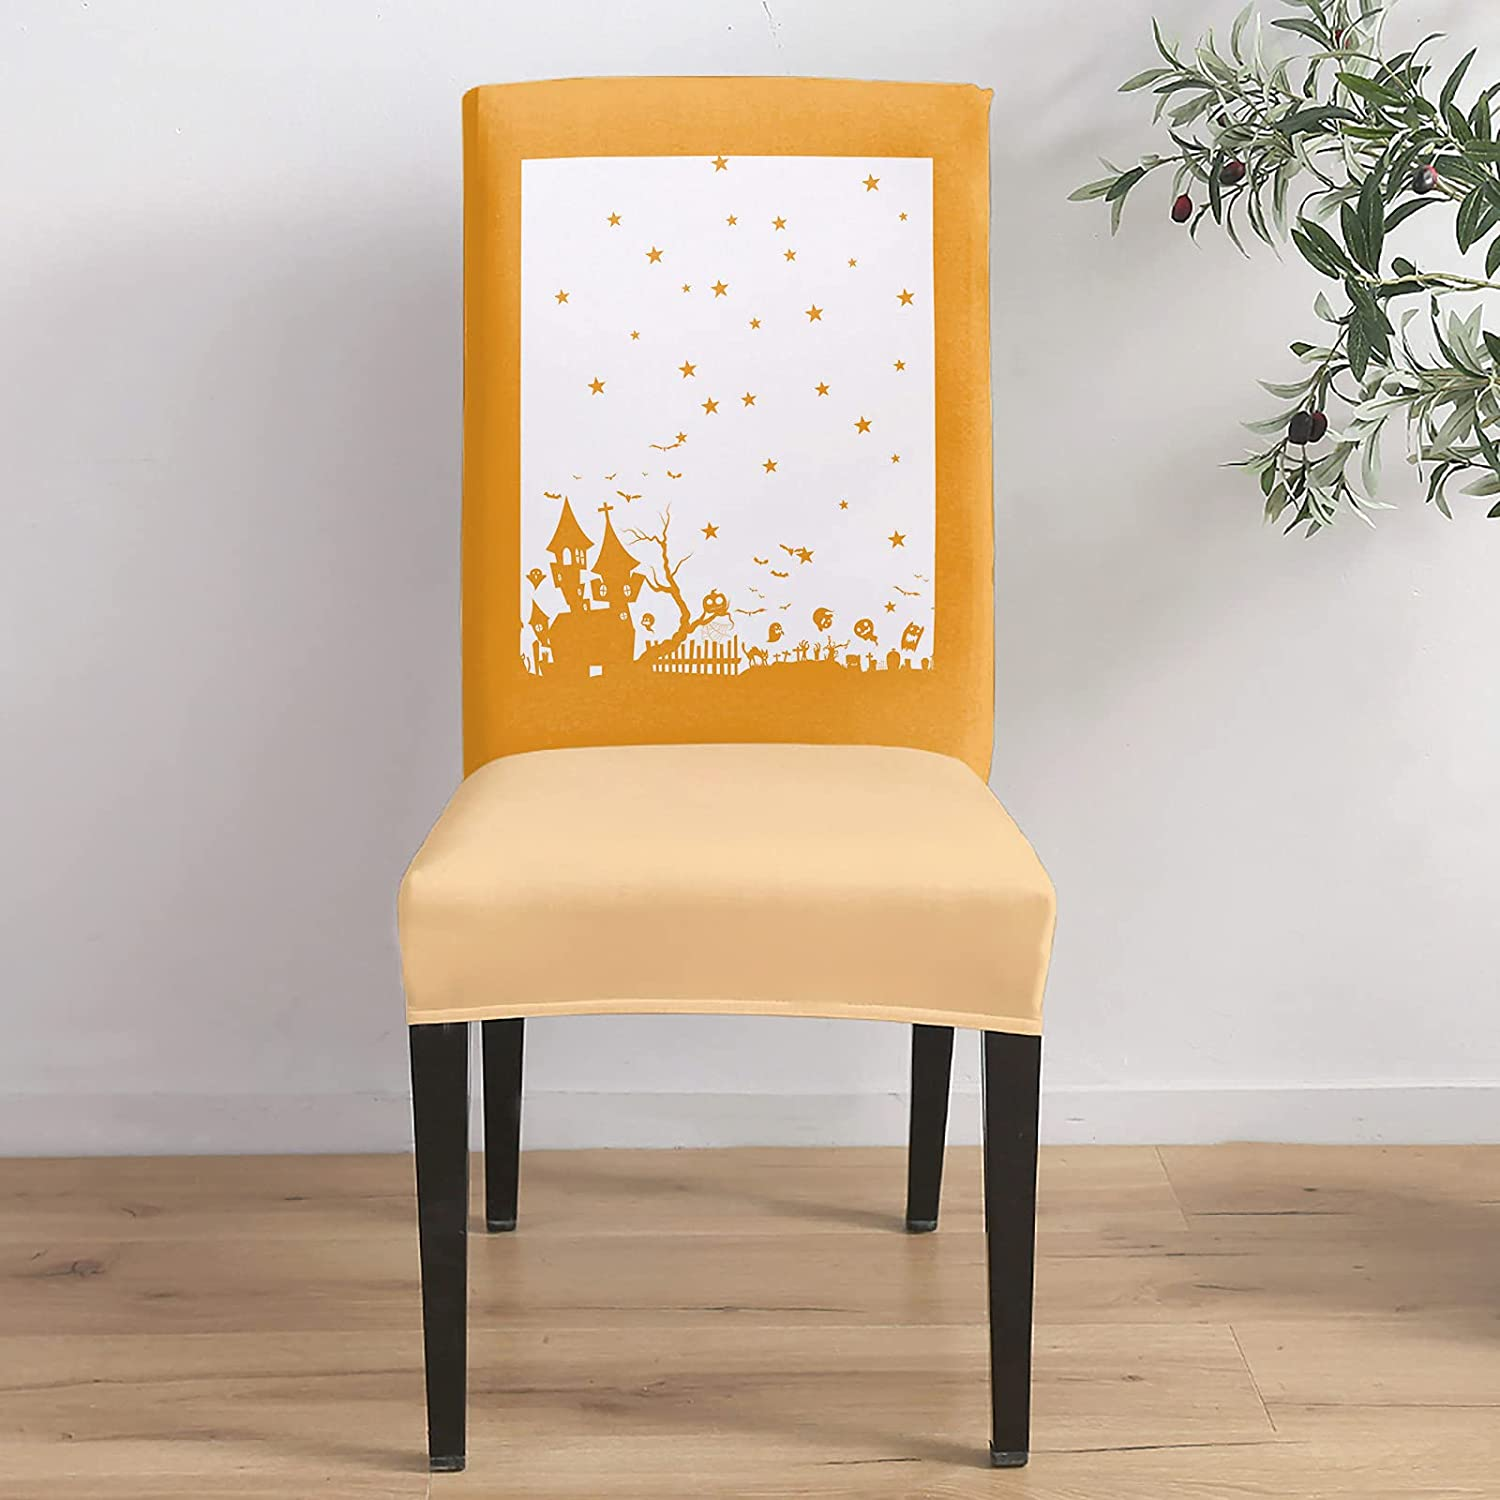 6Pcs Chair Covers Dining Room Halloween Chic Sta Seat Protector Direct Max 43% OFF stock discount